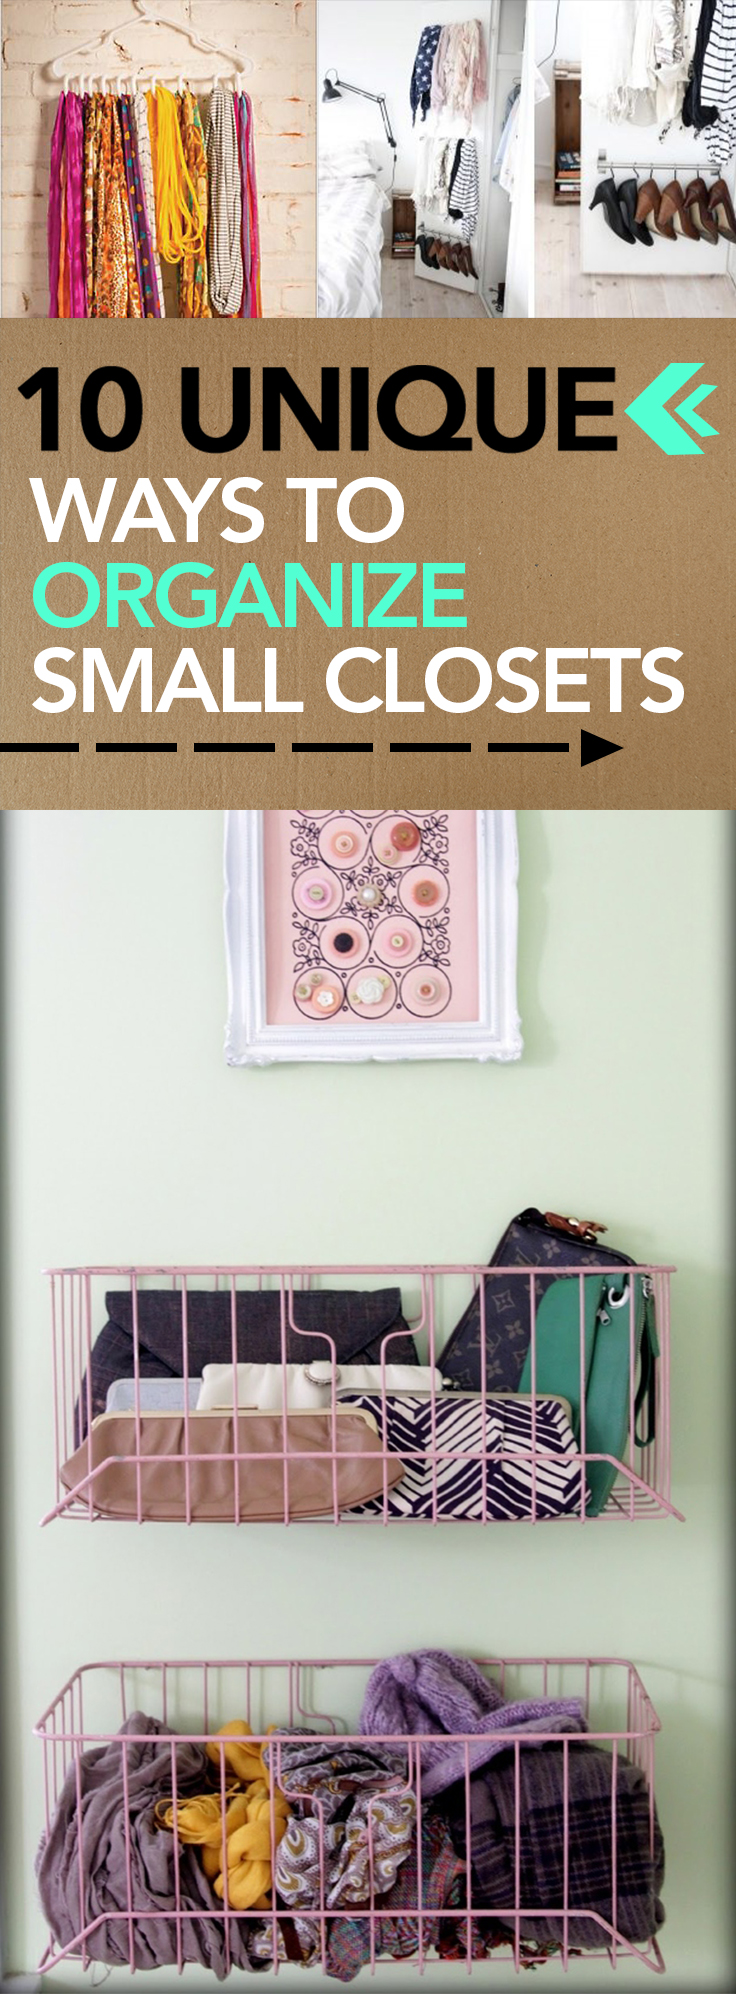 10 unique ways to organize small closets page 3 of 11 for How to organize your small bedroom closet